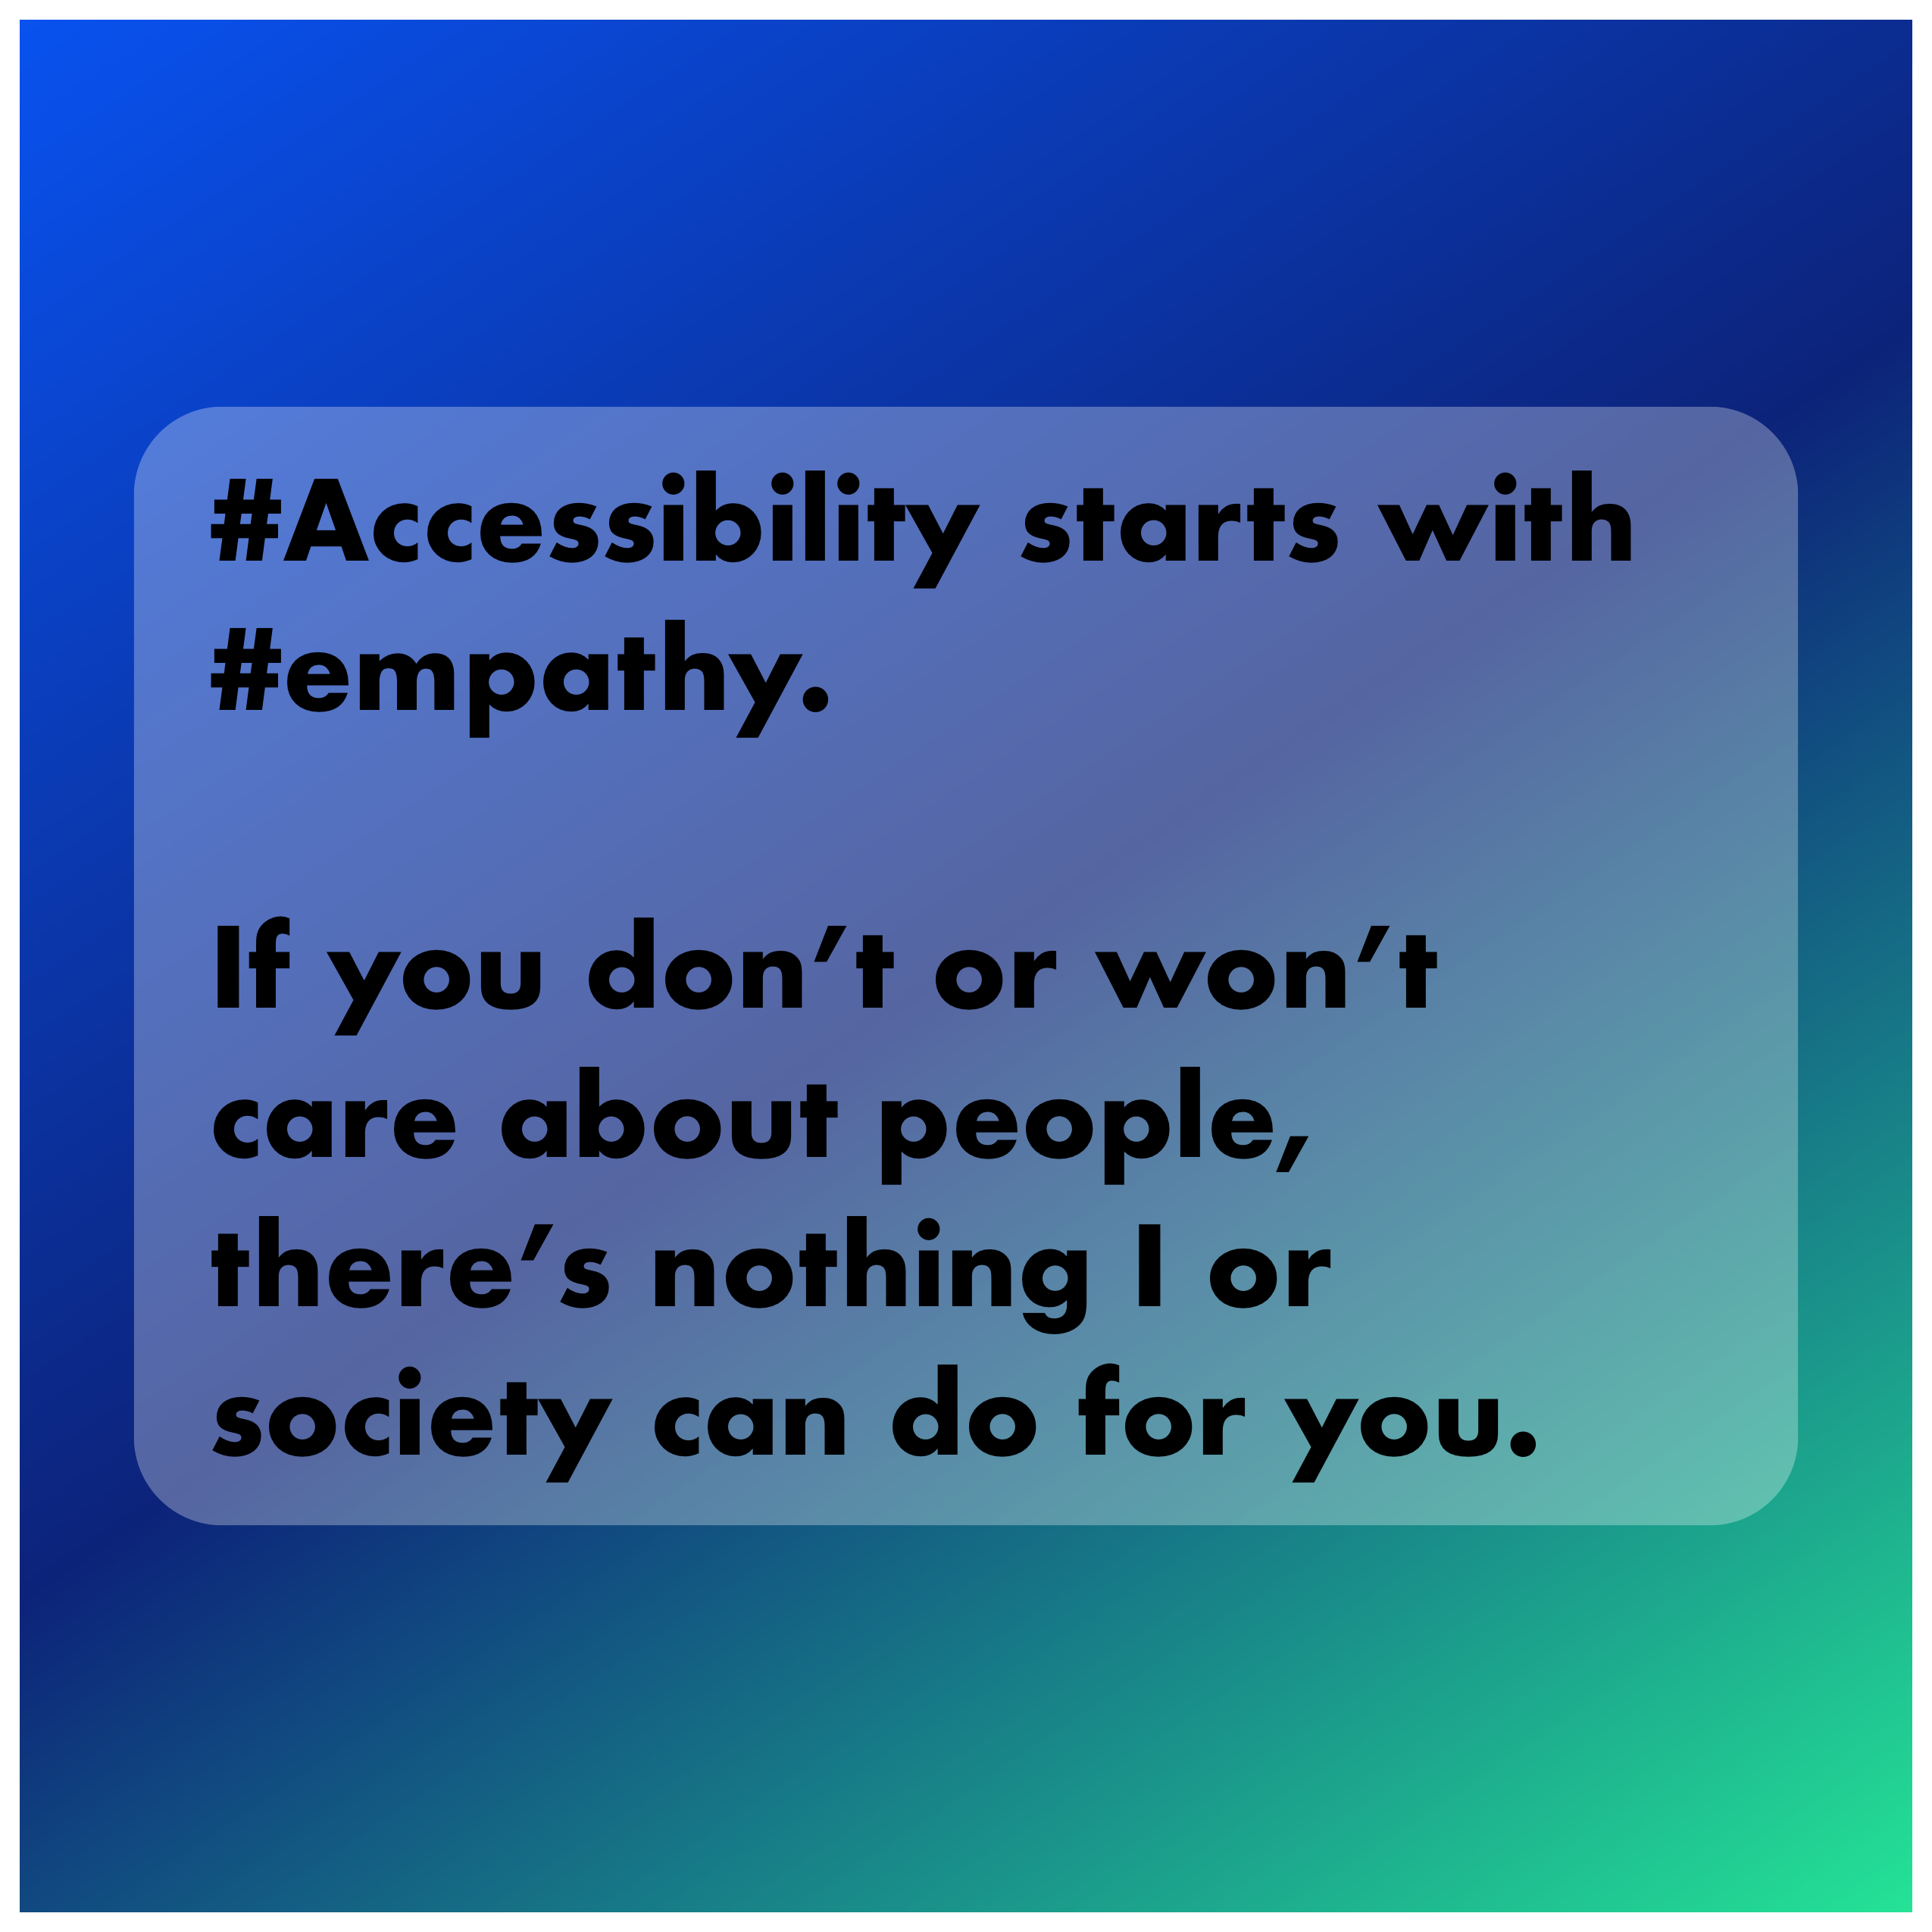 Accessibility starts with empathy. If you don't or won't care about people there's nothing I or society can do for you.